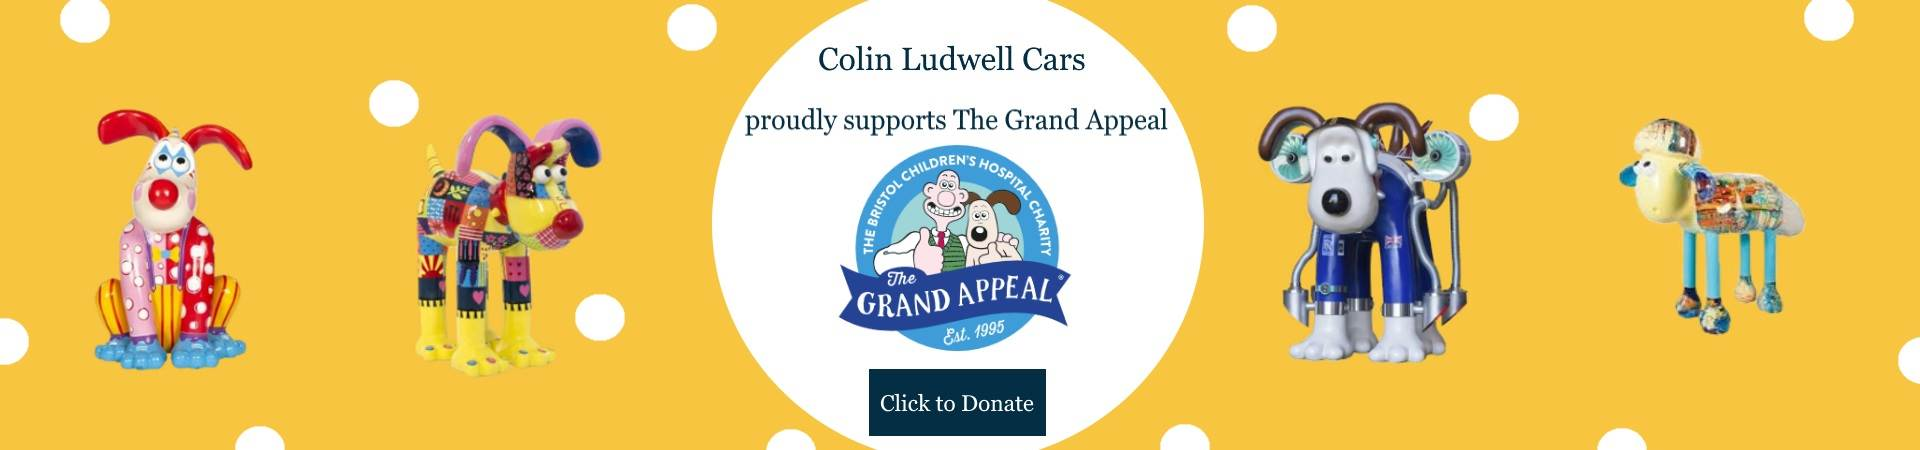 Grand Appeal Charity